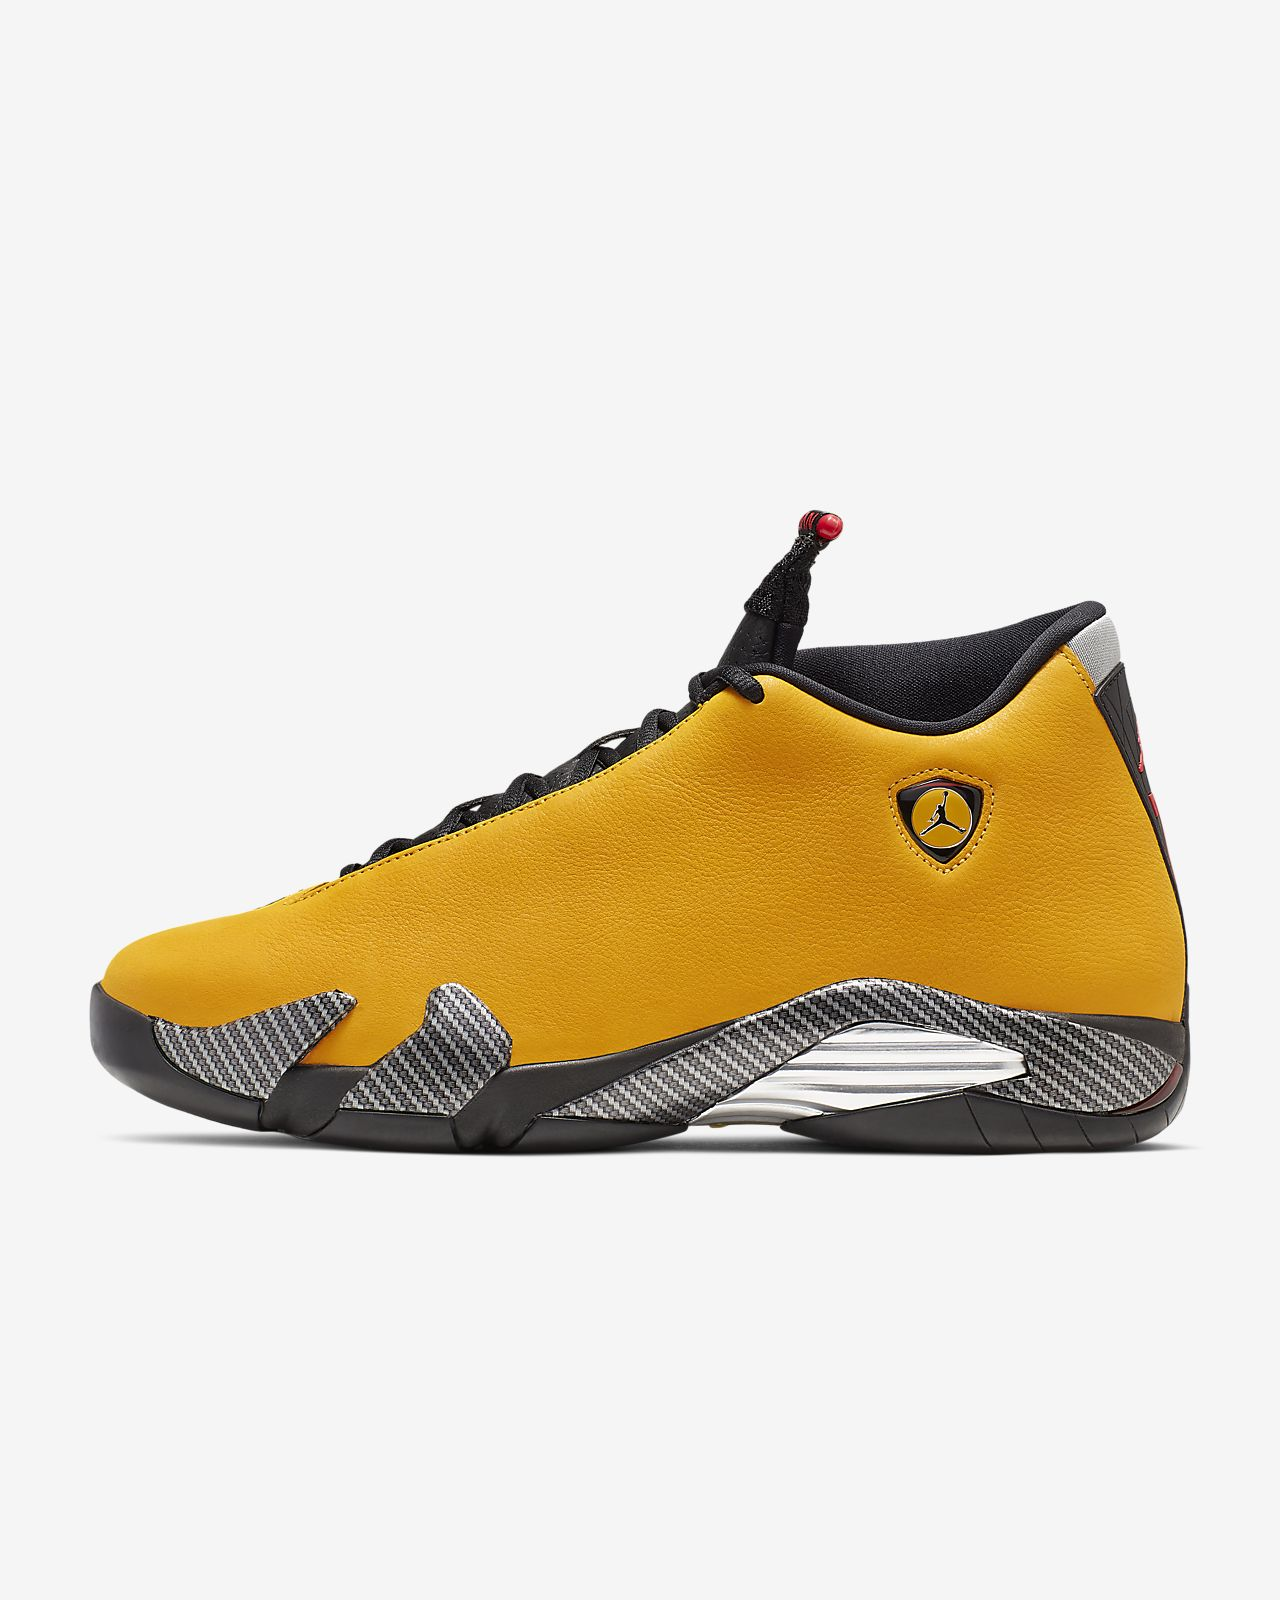 Air Jordan 14 Retro SE Men's Shoe